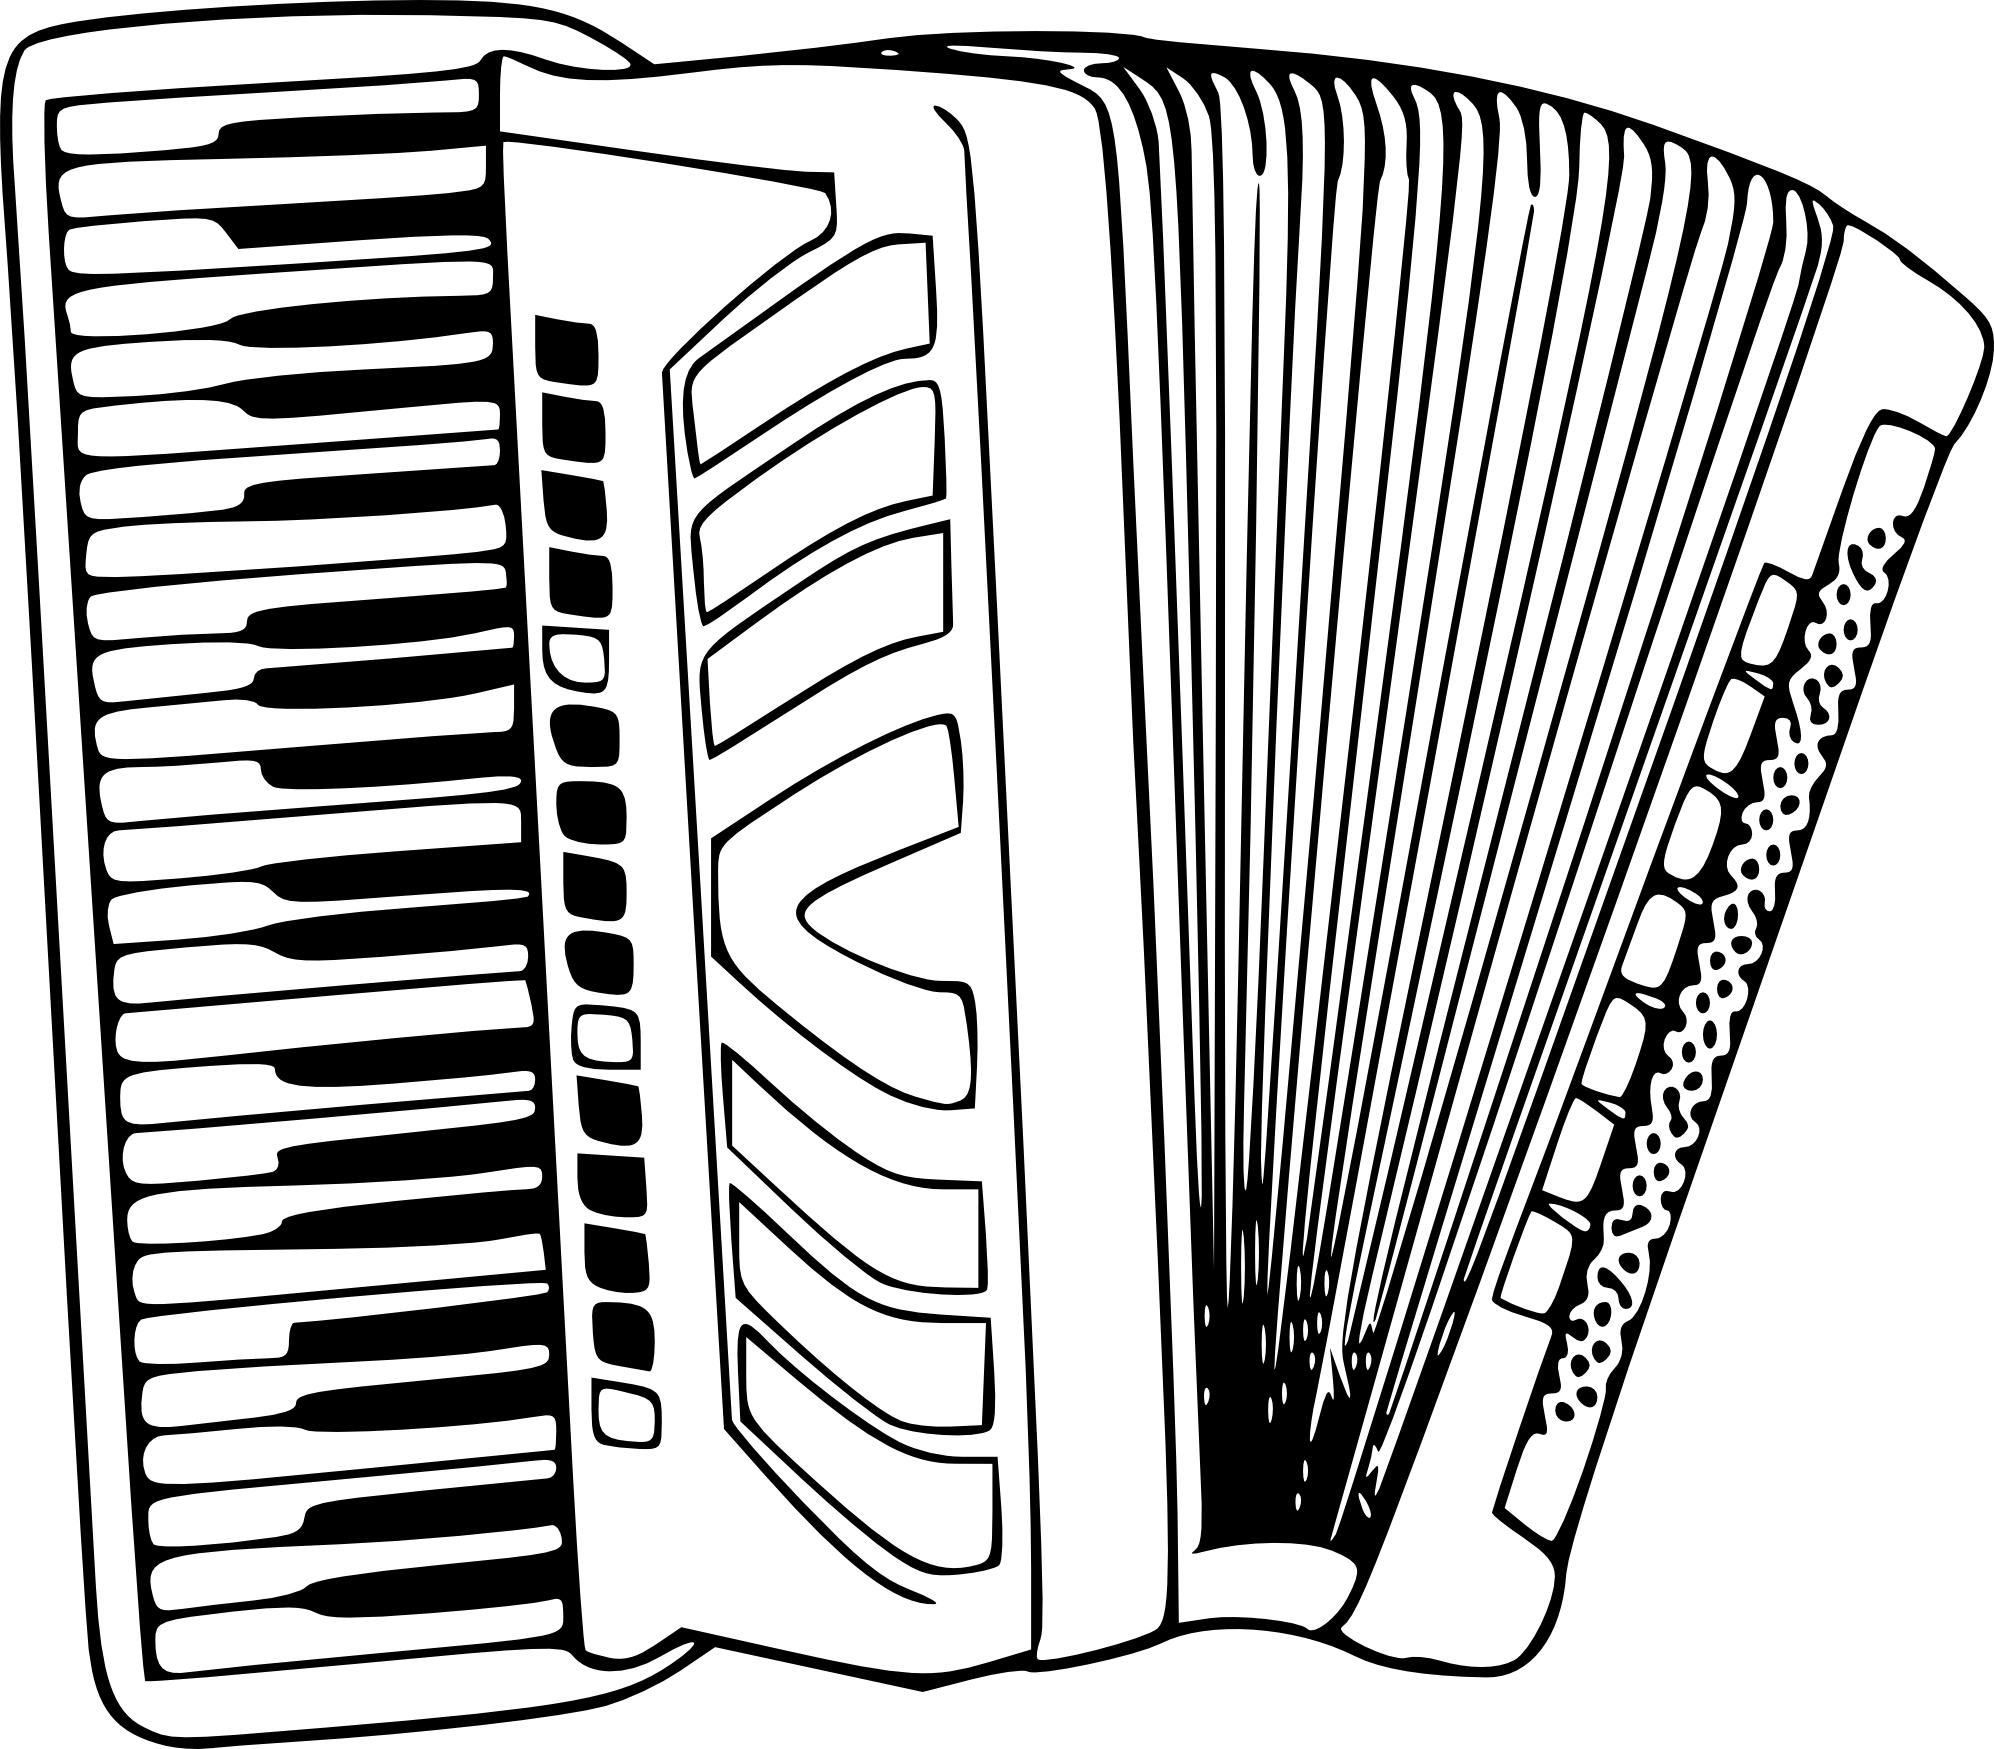 Good Jeux De Fille D Animaux #4: Coloriageaccordeon.jpg